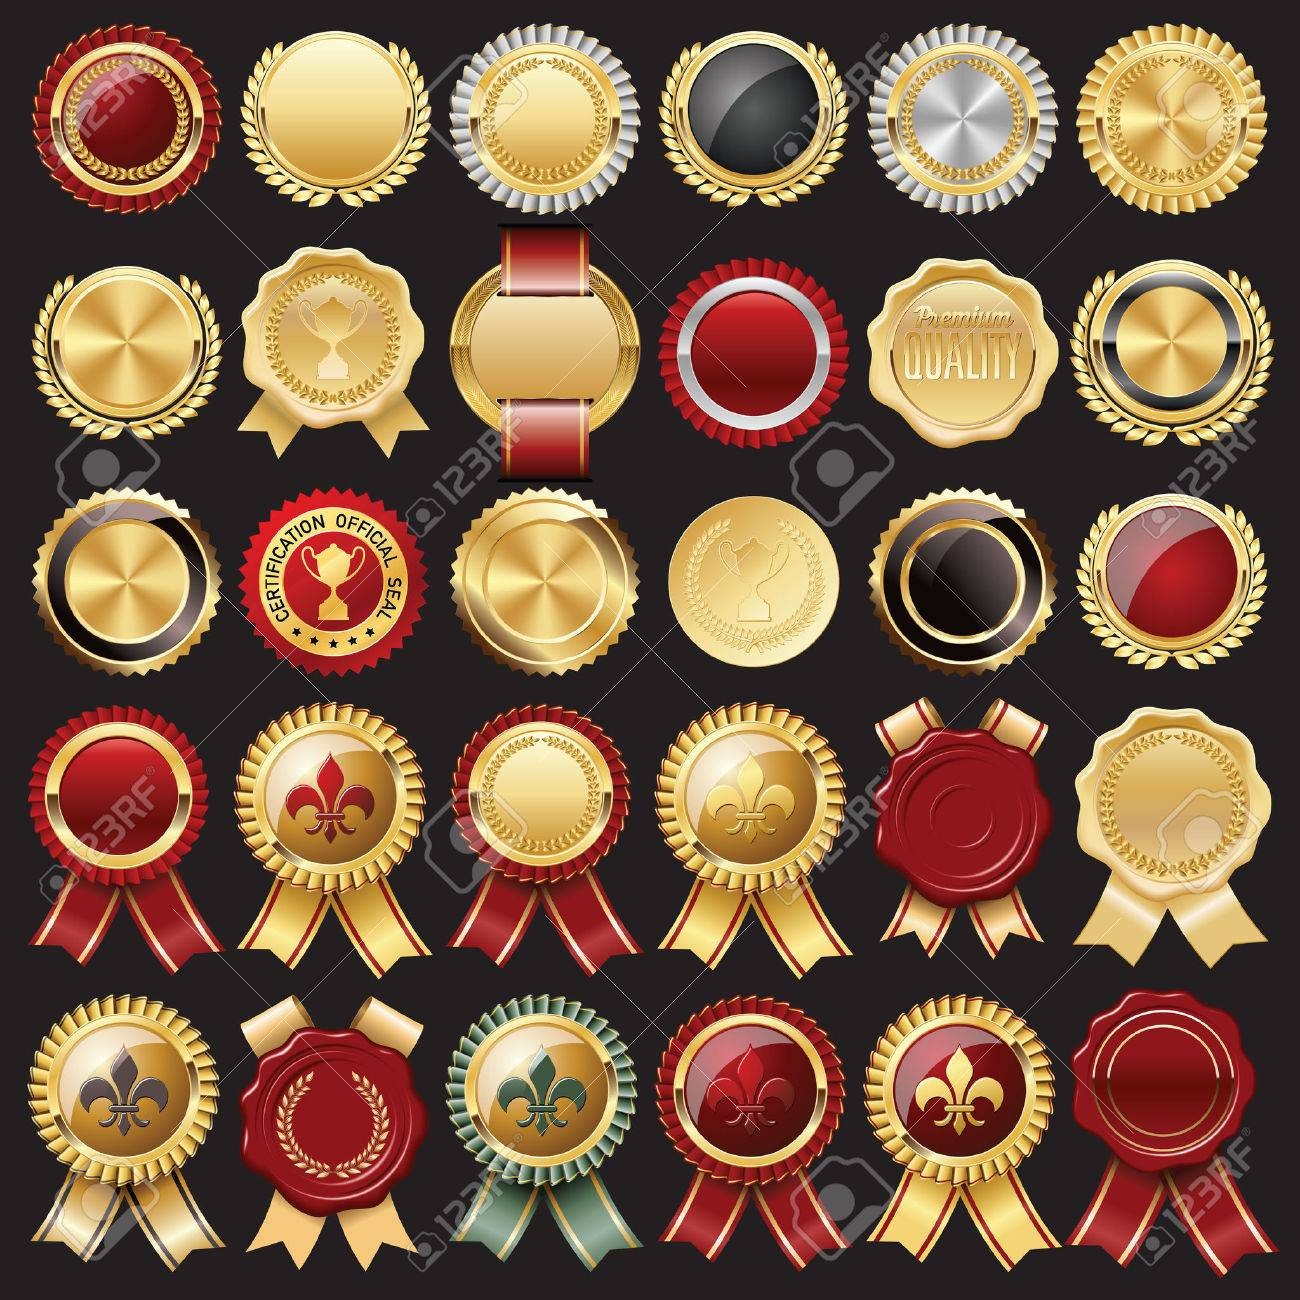 Set of Certificate Wax Seal and Badges - 53156311